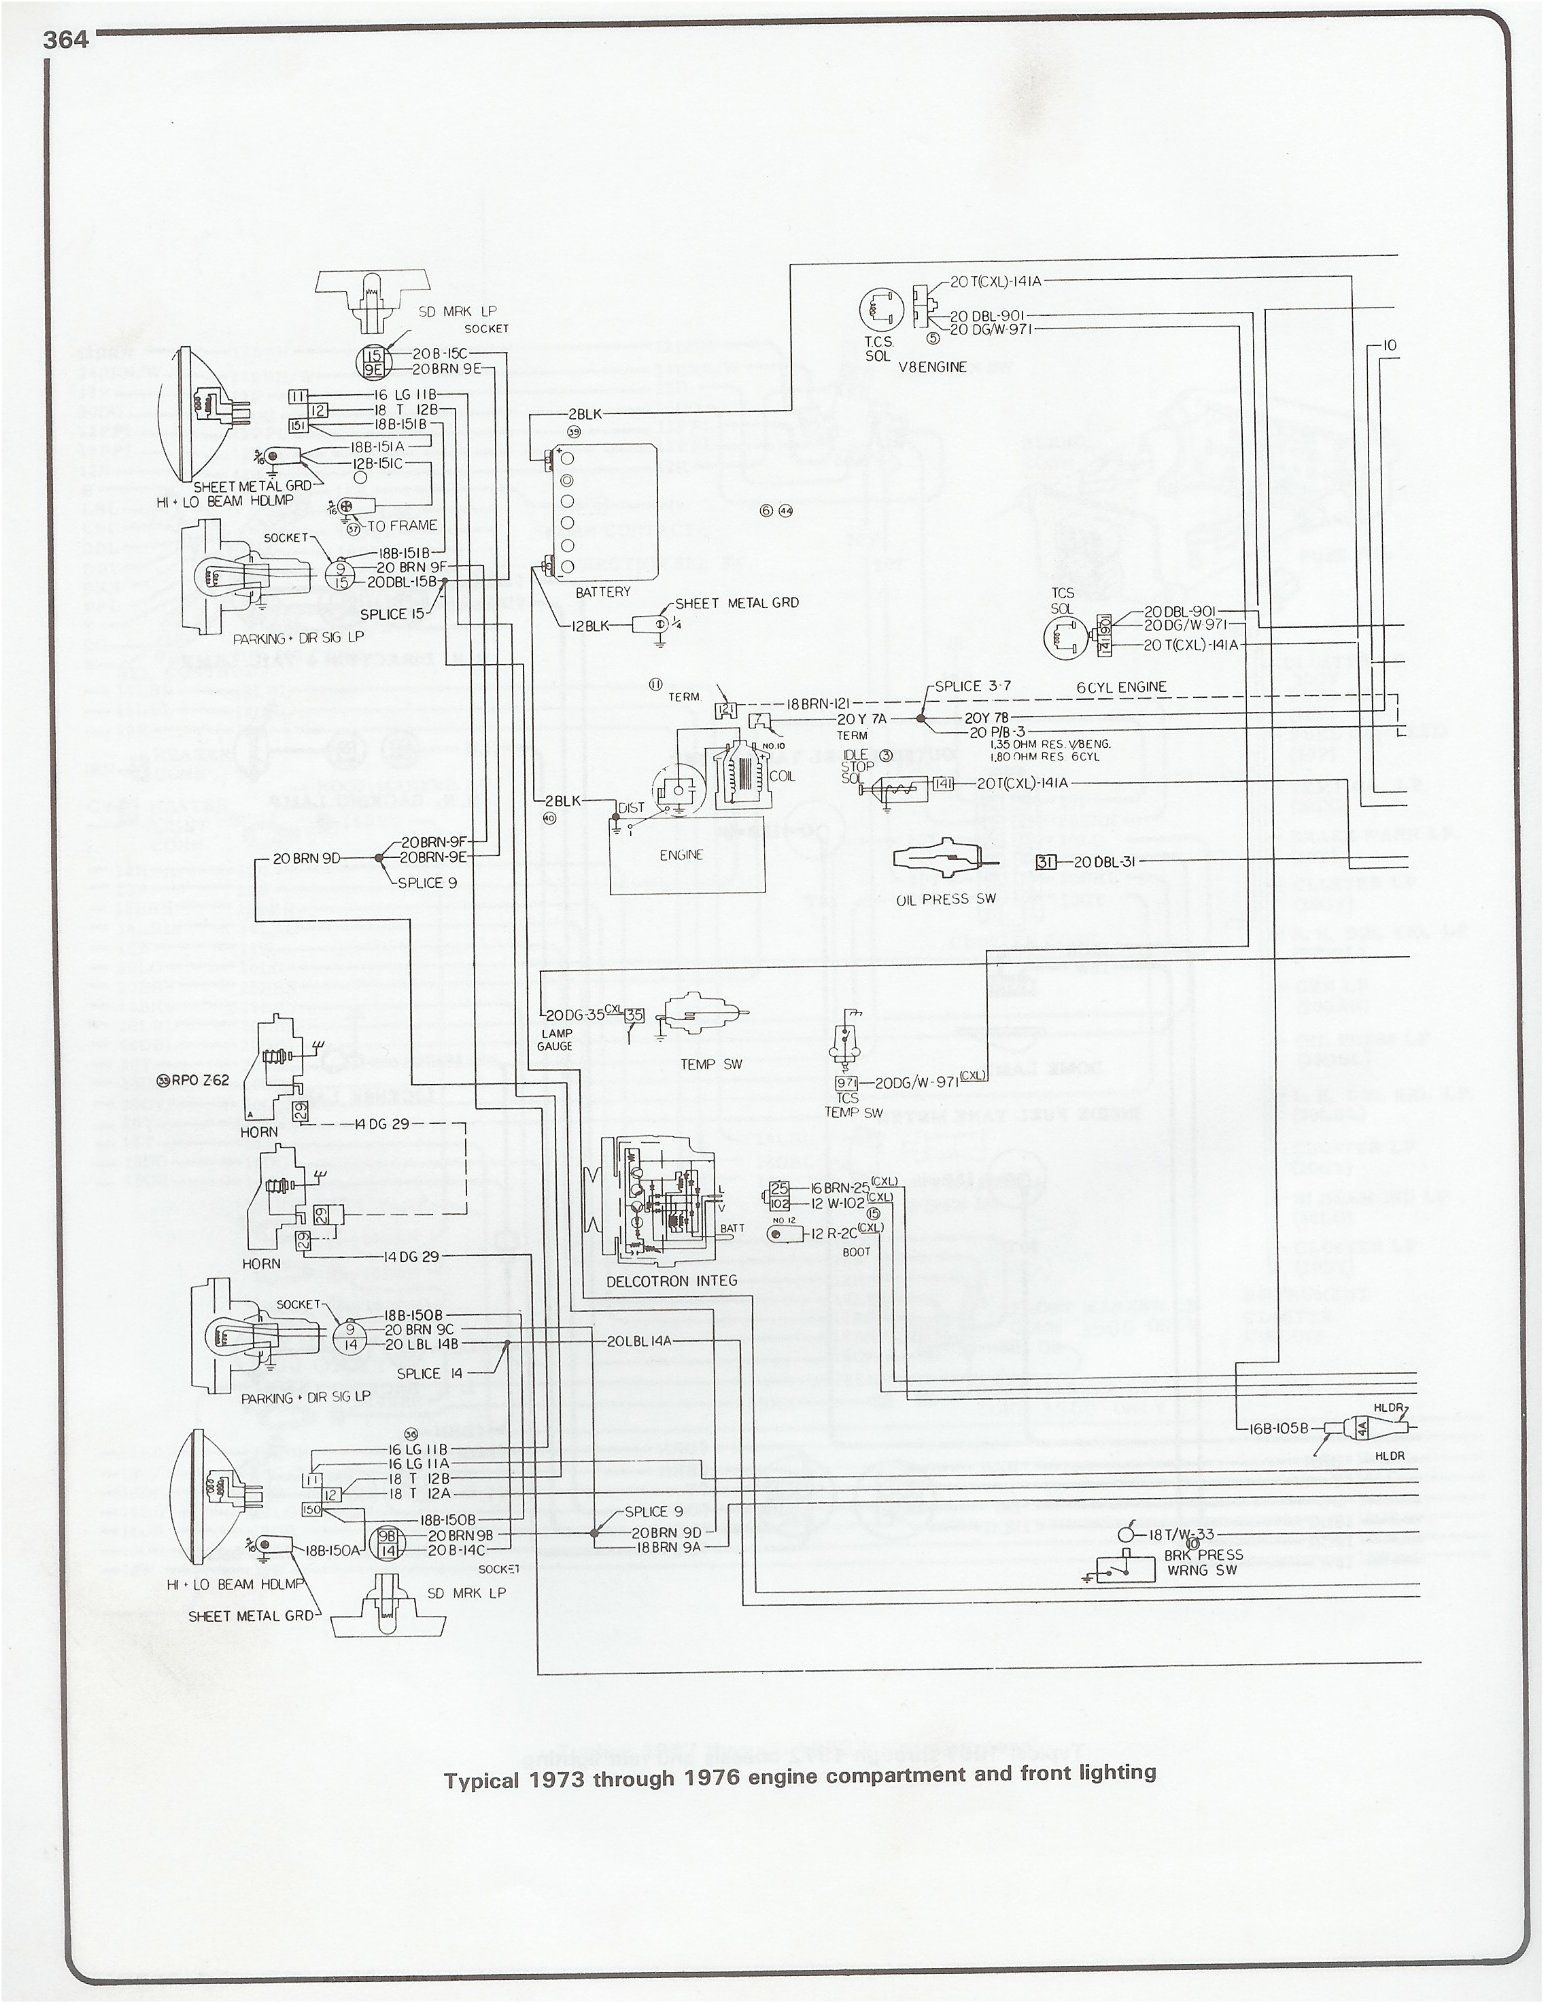 Download Coachman Camper Wiring Diagram Rv